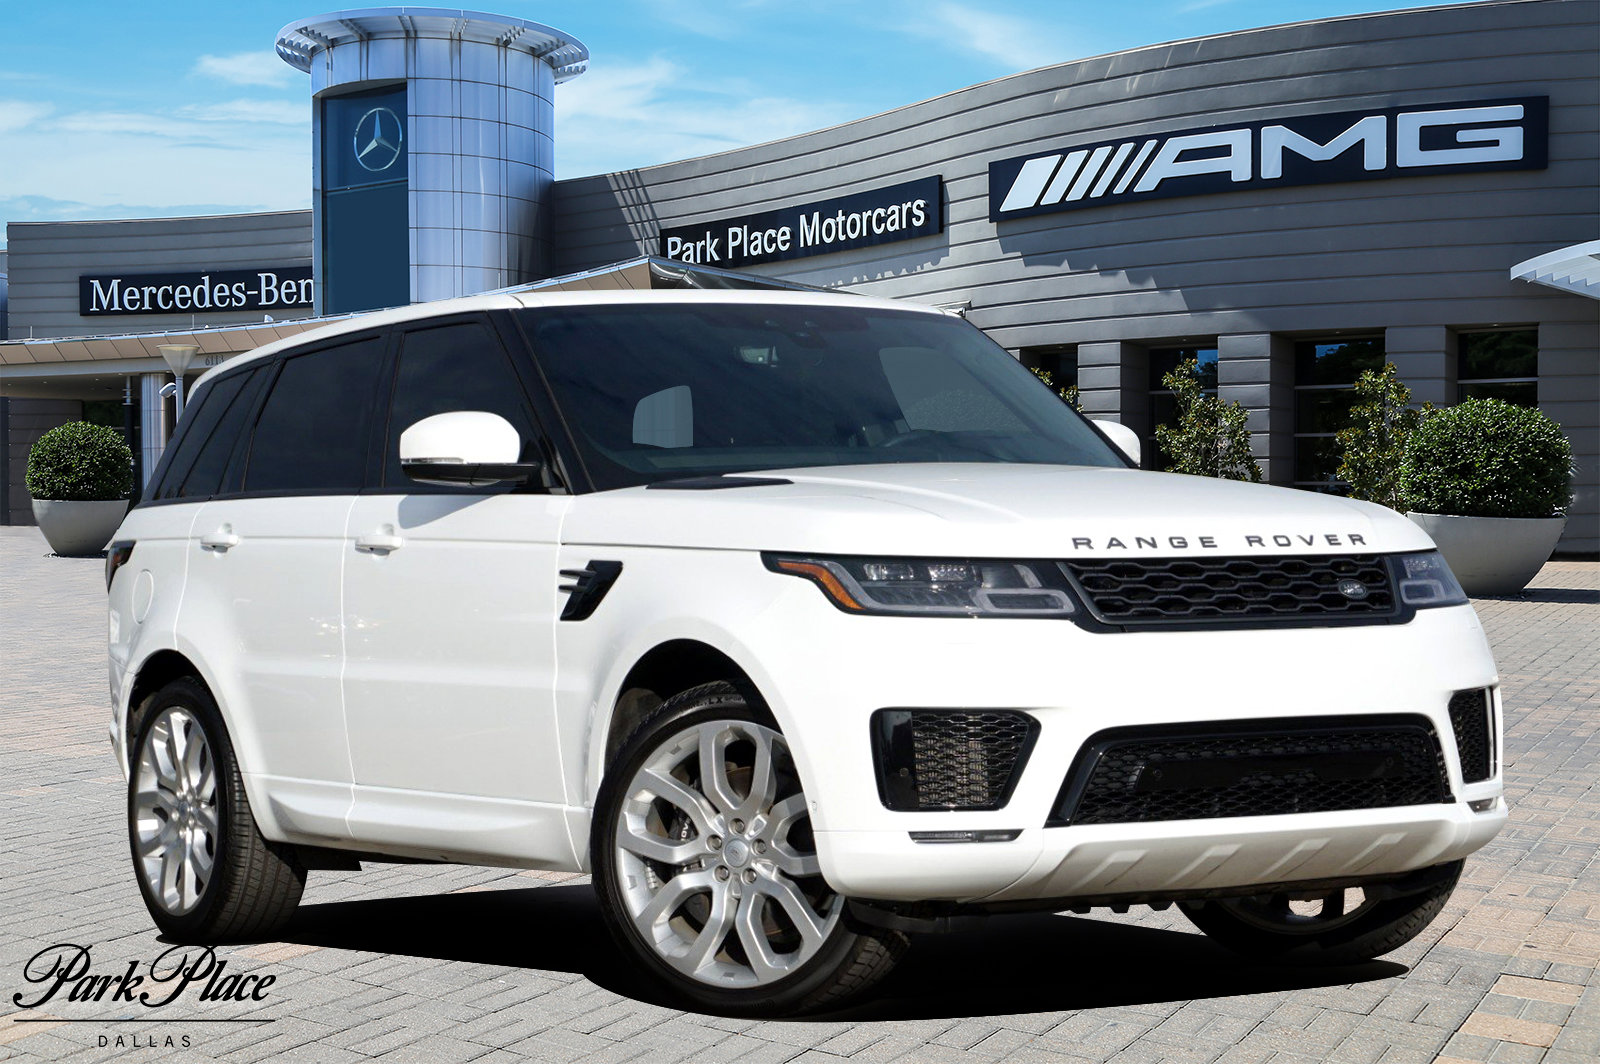 2019 Land Rover Range Rover Sport Supercharged image